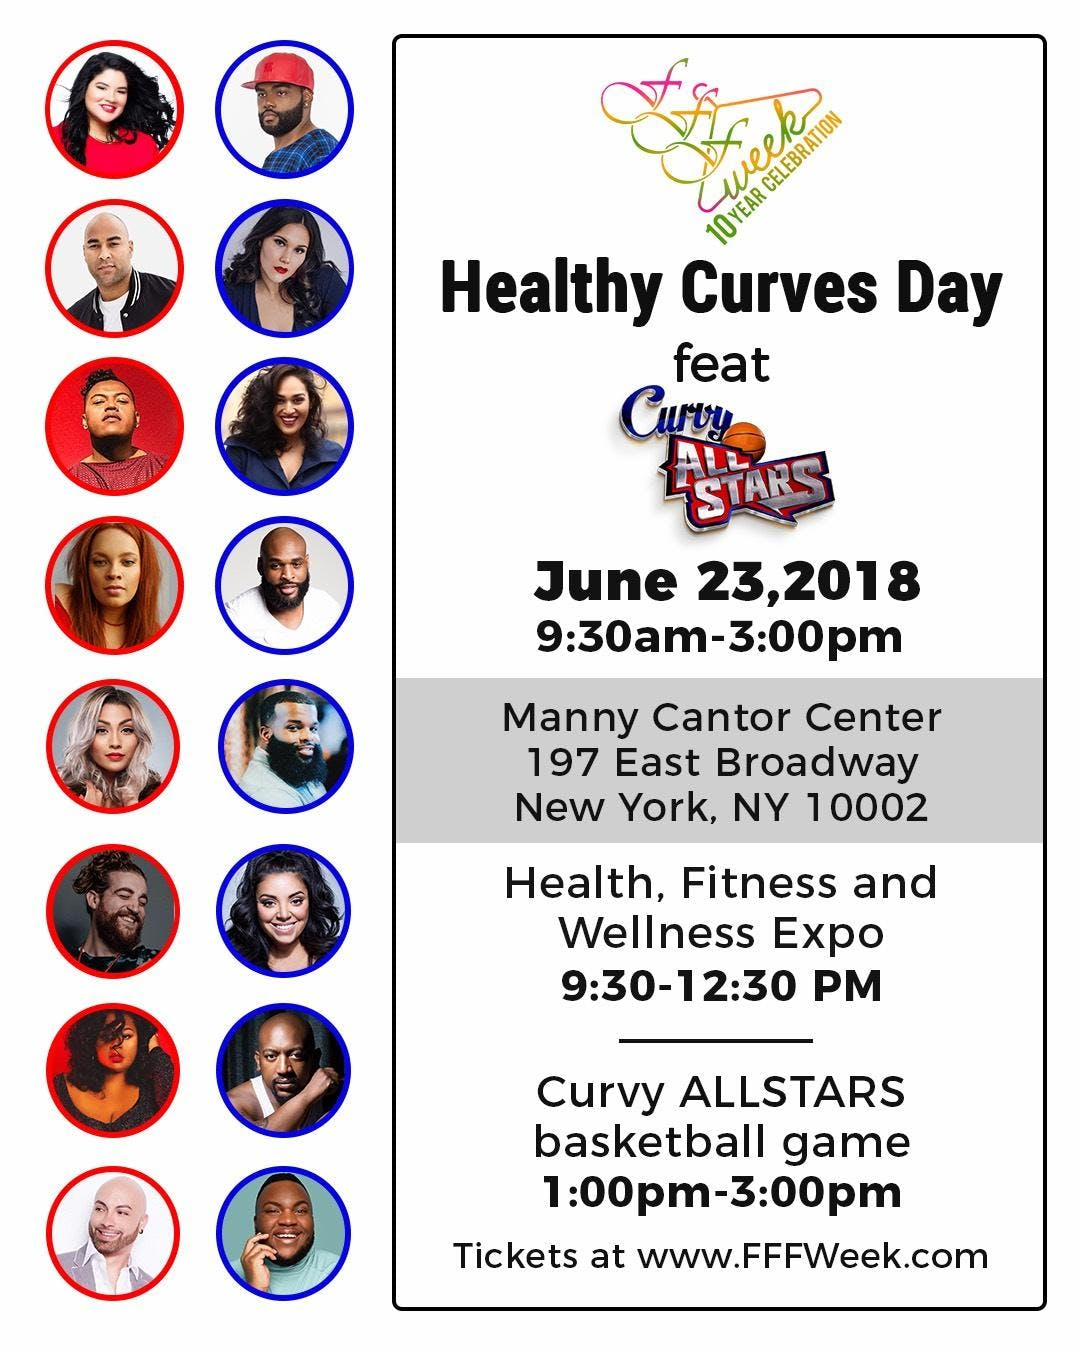 FFFWeek Presents Healthy Curves Day featuring The Curvy All Stars Charity Basketball Game